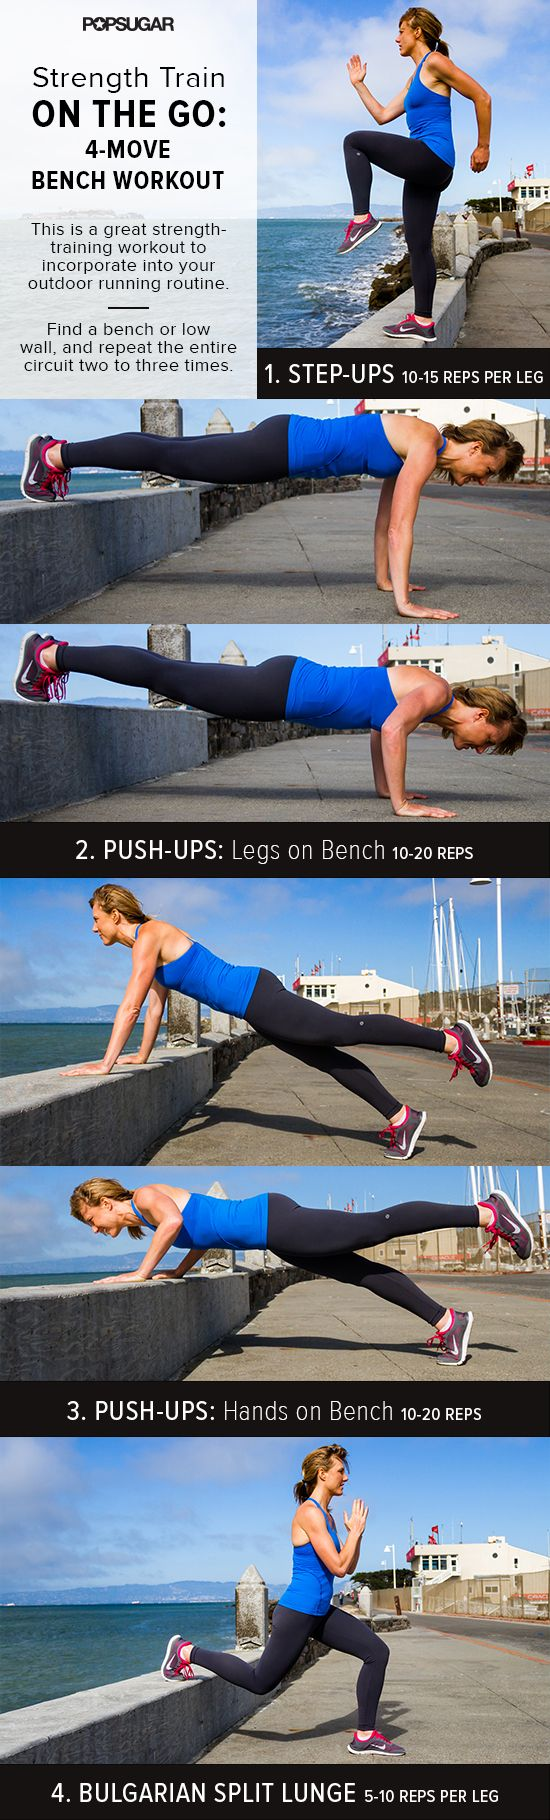 Strength Train on the Go With This Bench Workout